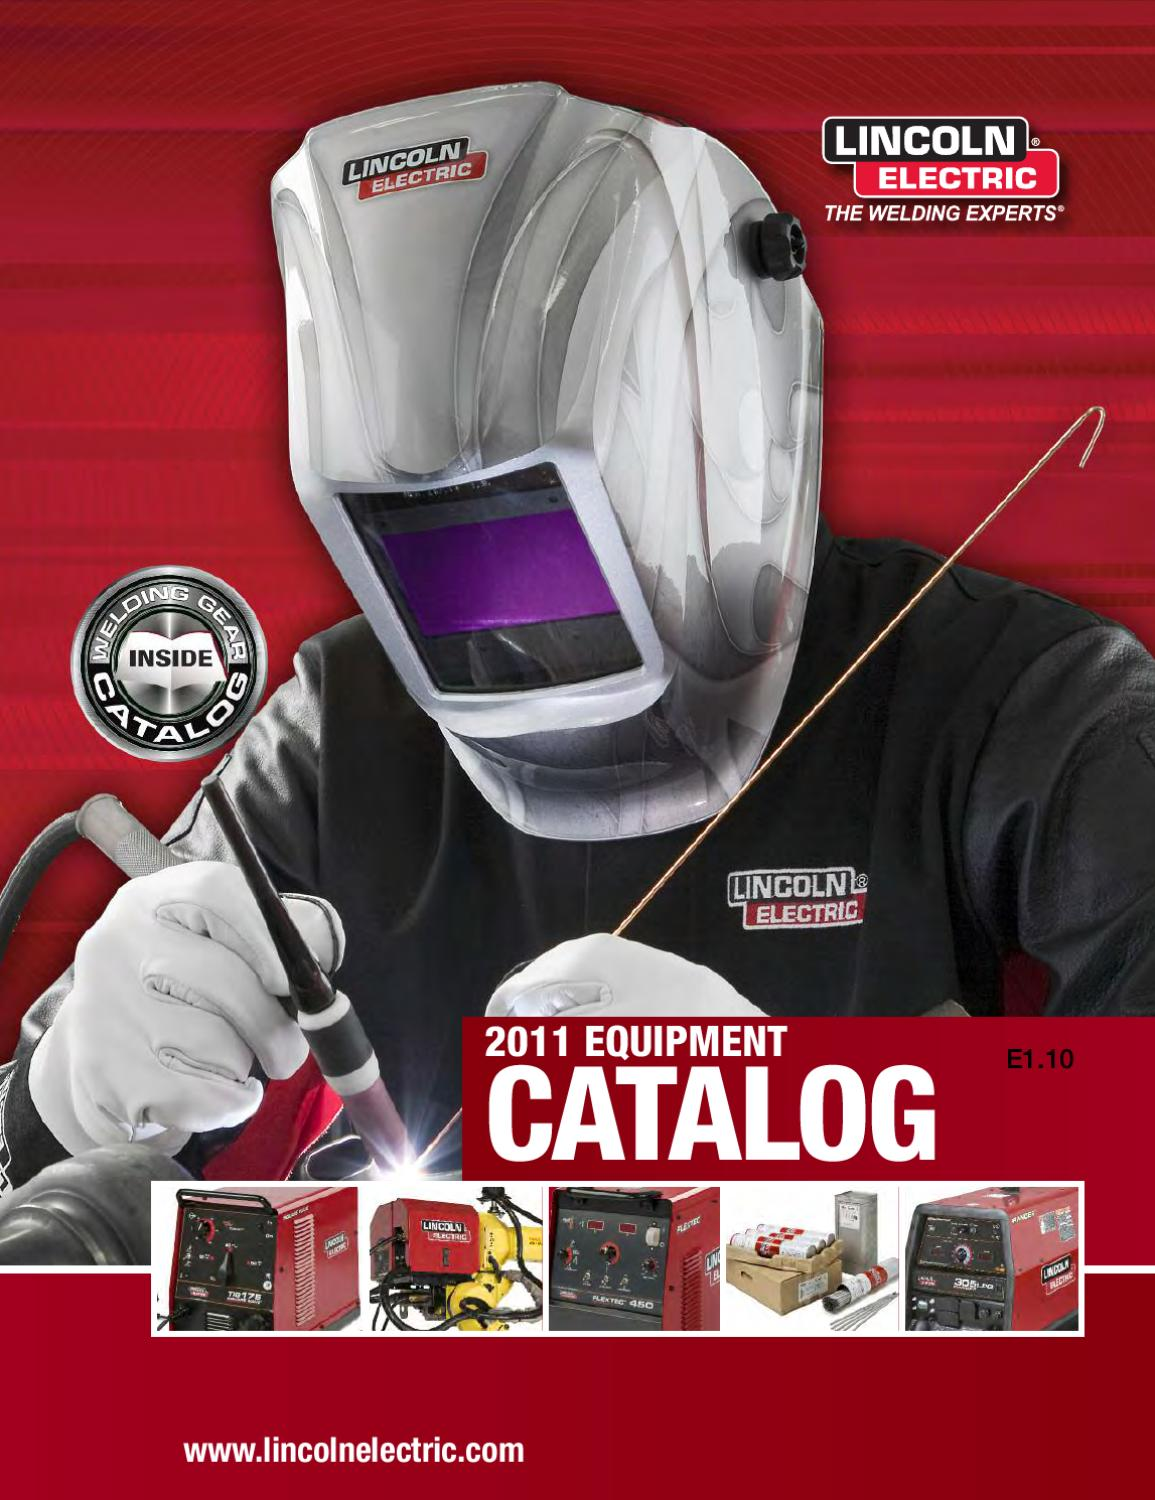 tig s single electric lincoln welding ready phase kit stick and pak invertec welders machines accessory with amp welder torch p